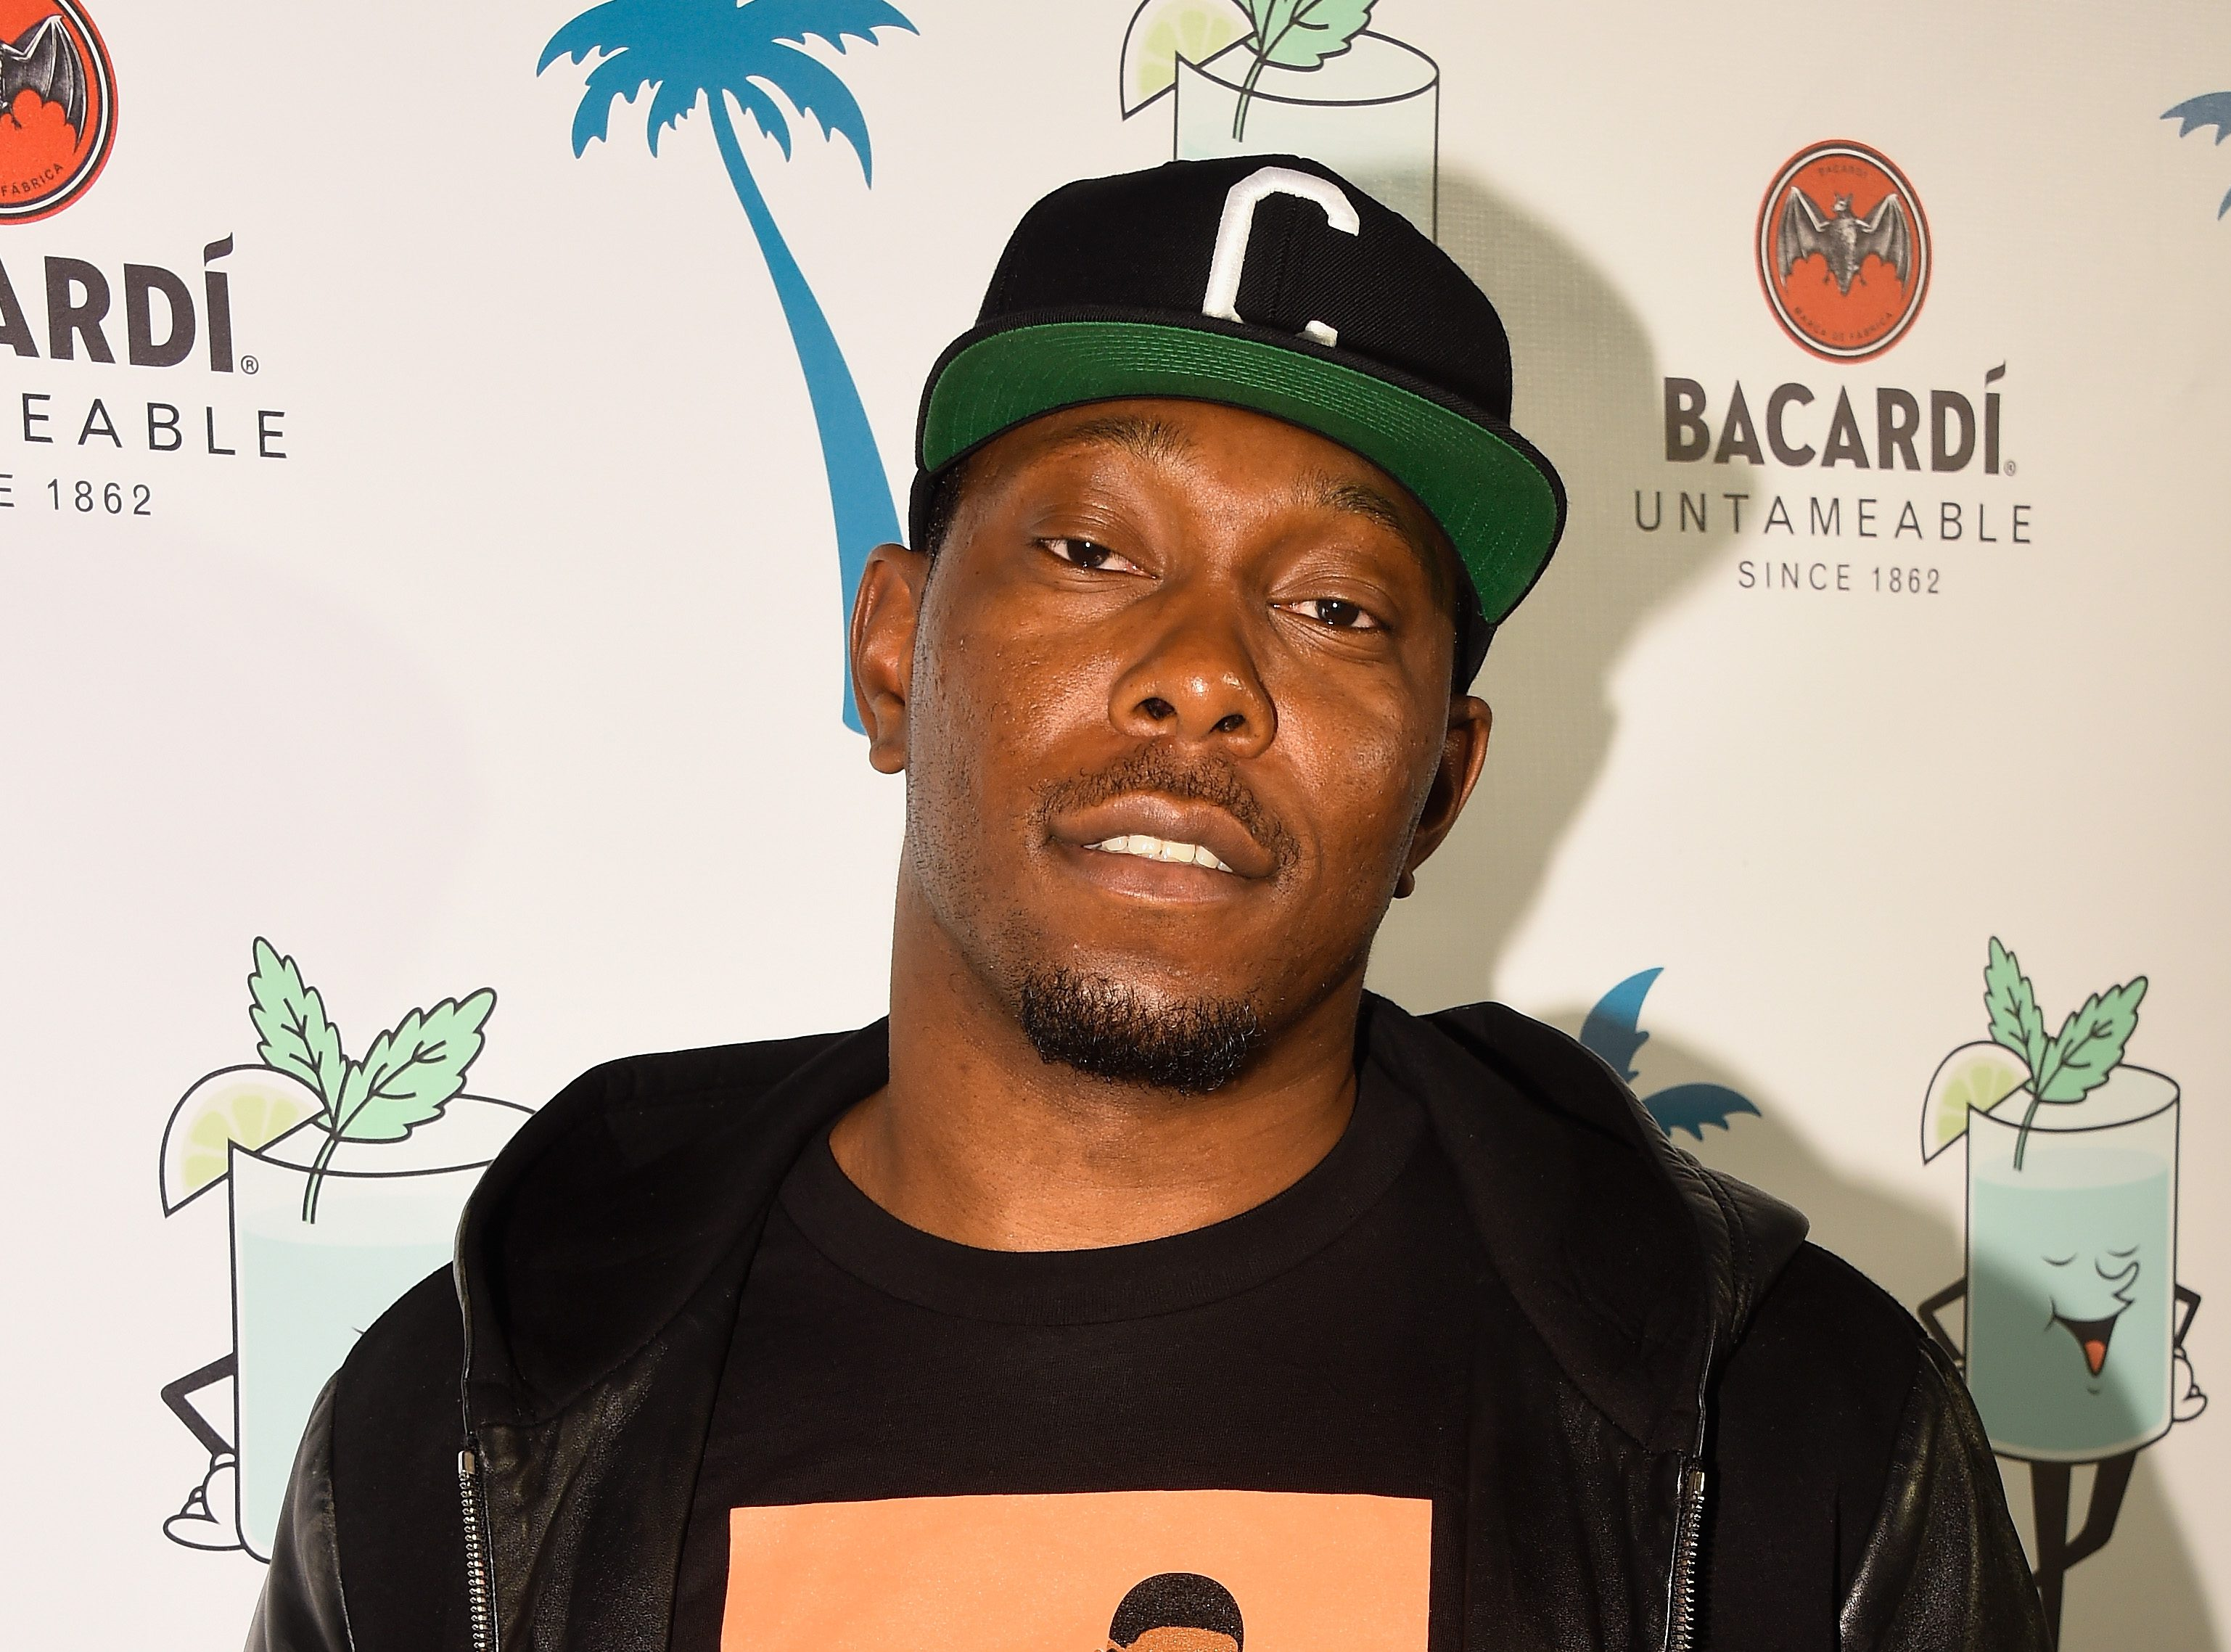 Dizzee Rascal doesn't blame Wiley for getting stabbed, accuses him instead of 'creating hype'